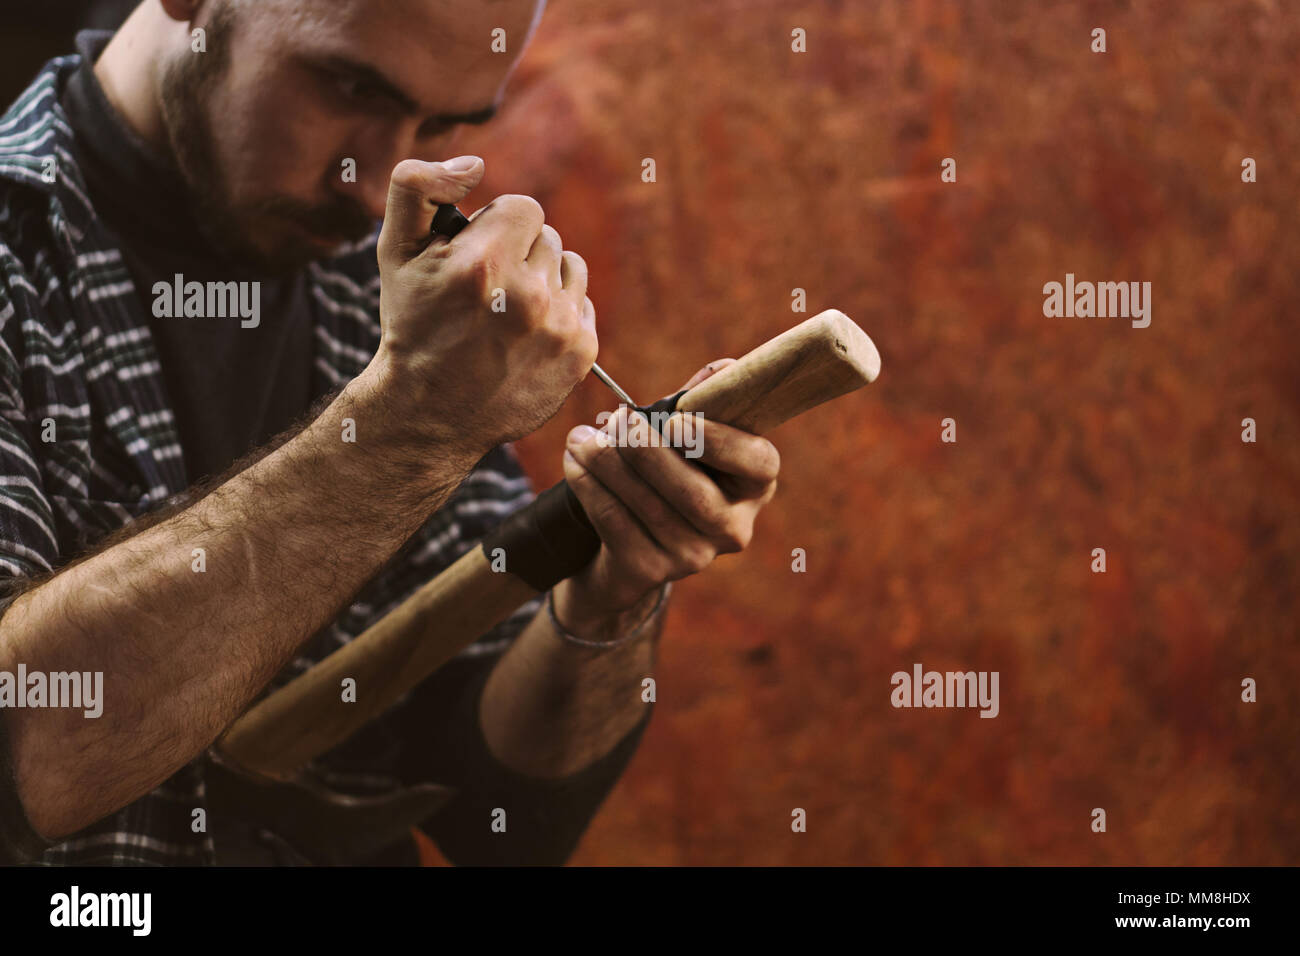 Man working in carpentry workshop. He pierces leather winding on wooden handle of ax. Men at work. Hand work. - Stock Image